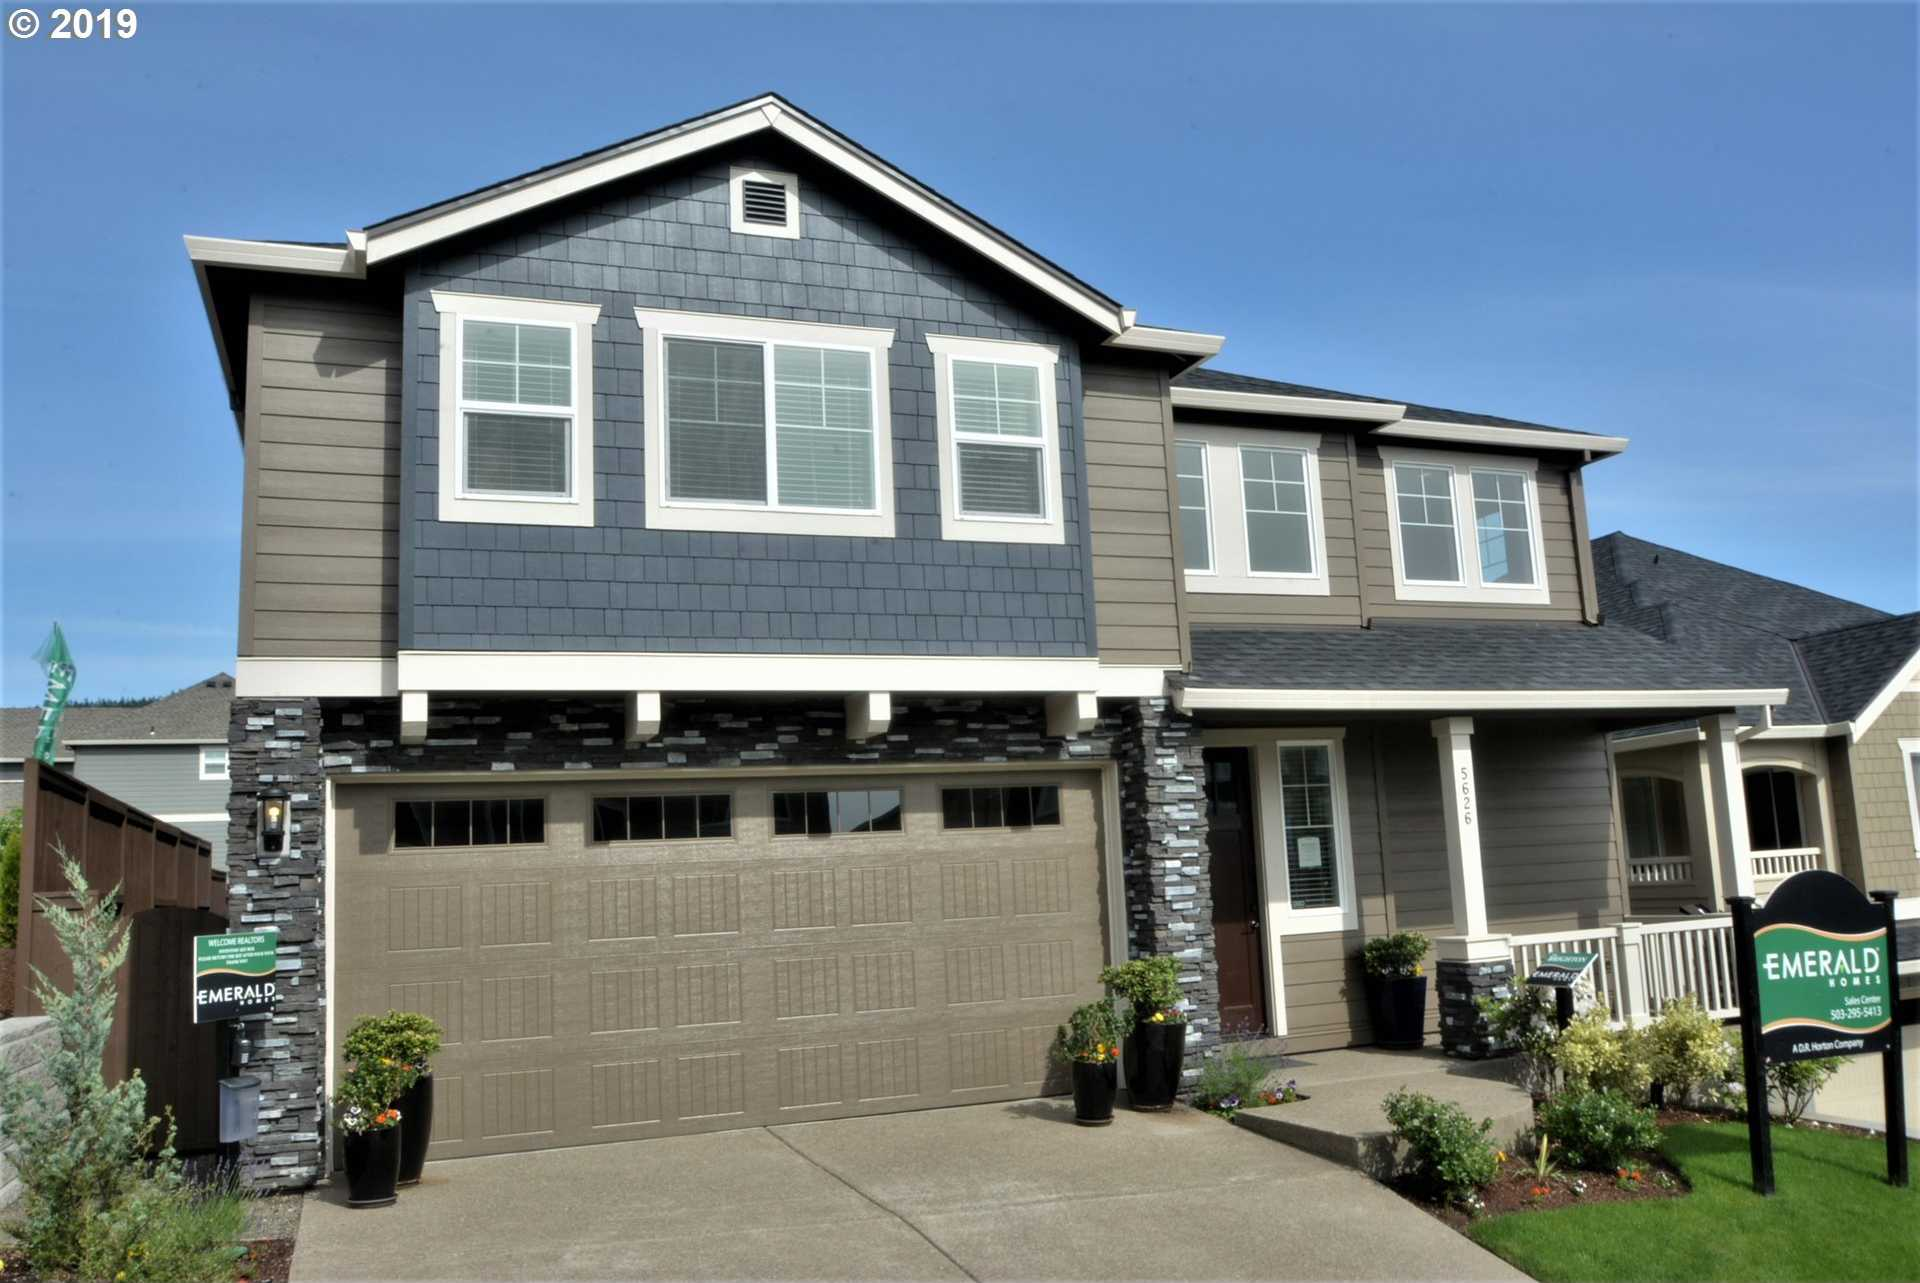 $731,995 - 5Br/3Ba -  for Sale in Russell/westmont, Beaverton